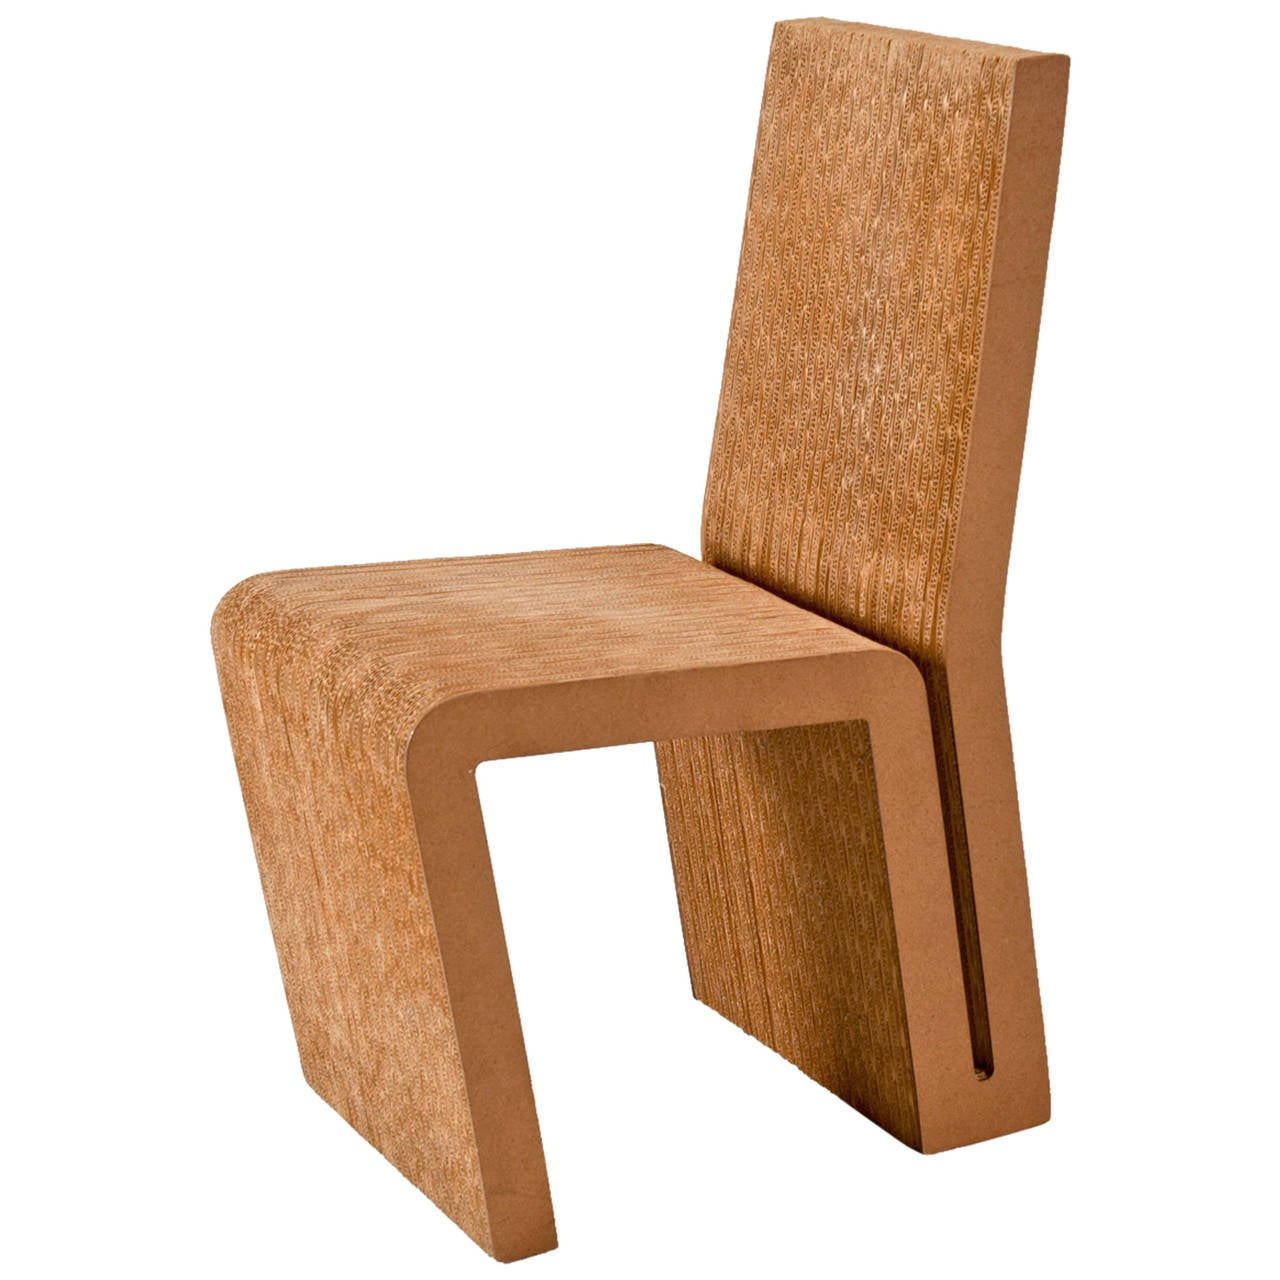 Frank Gehry Side Chair In Cardboard For Vitra Edition For